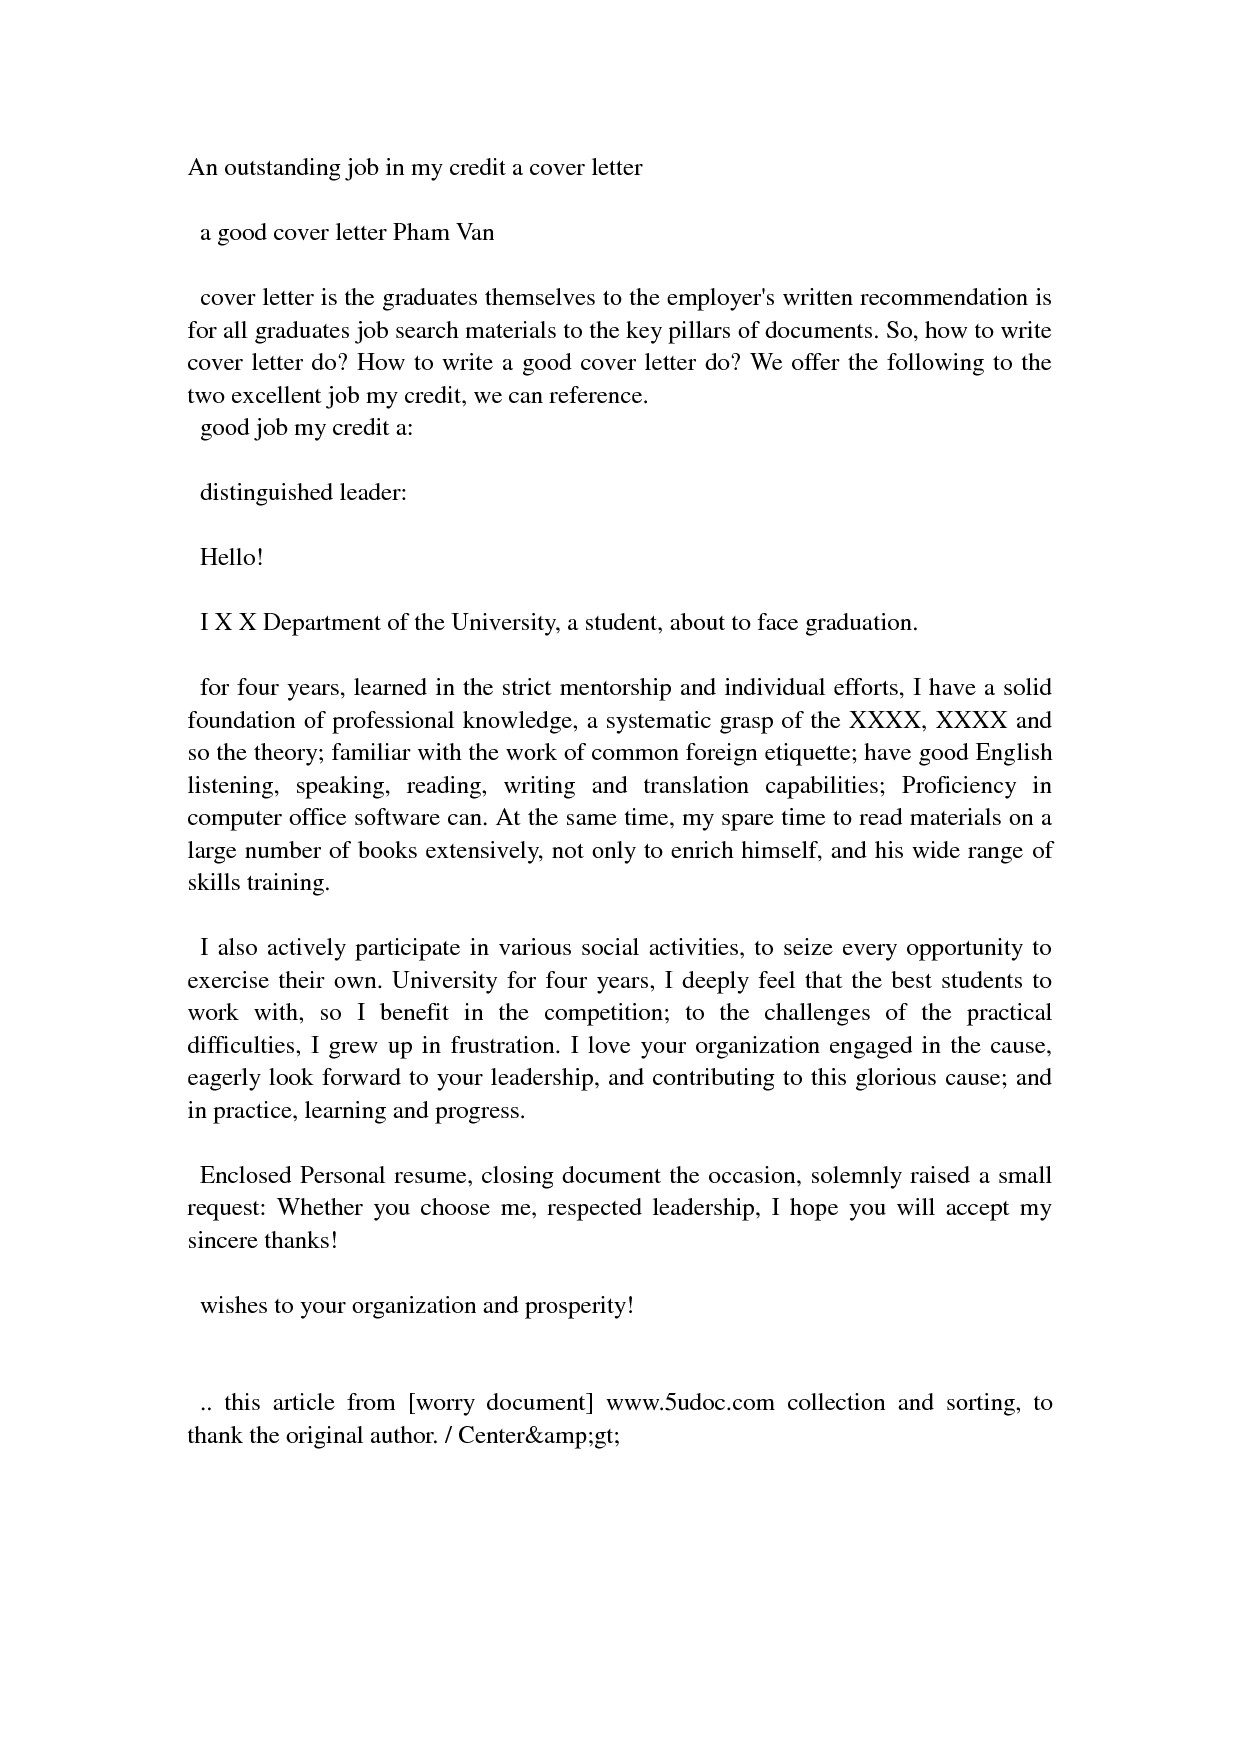 Example Of An Excellent Cover Letter Excellent Cover Letters Crna Cover Letter